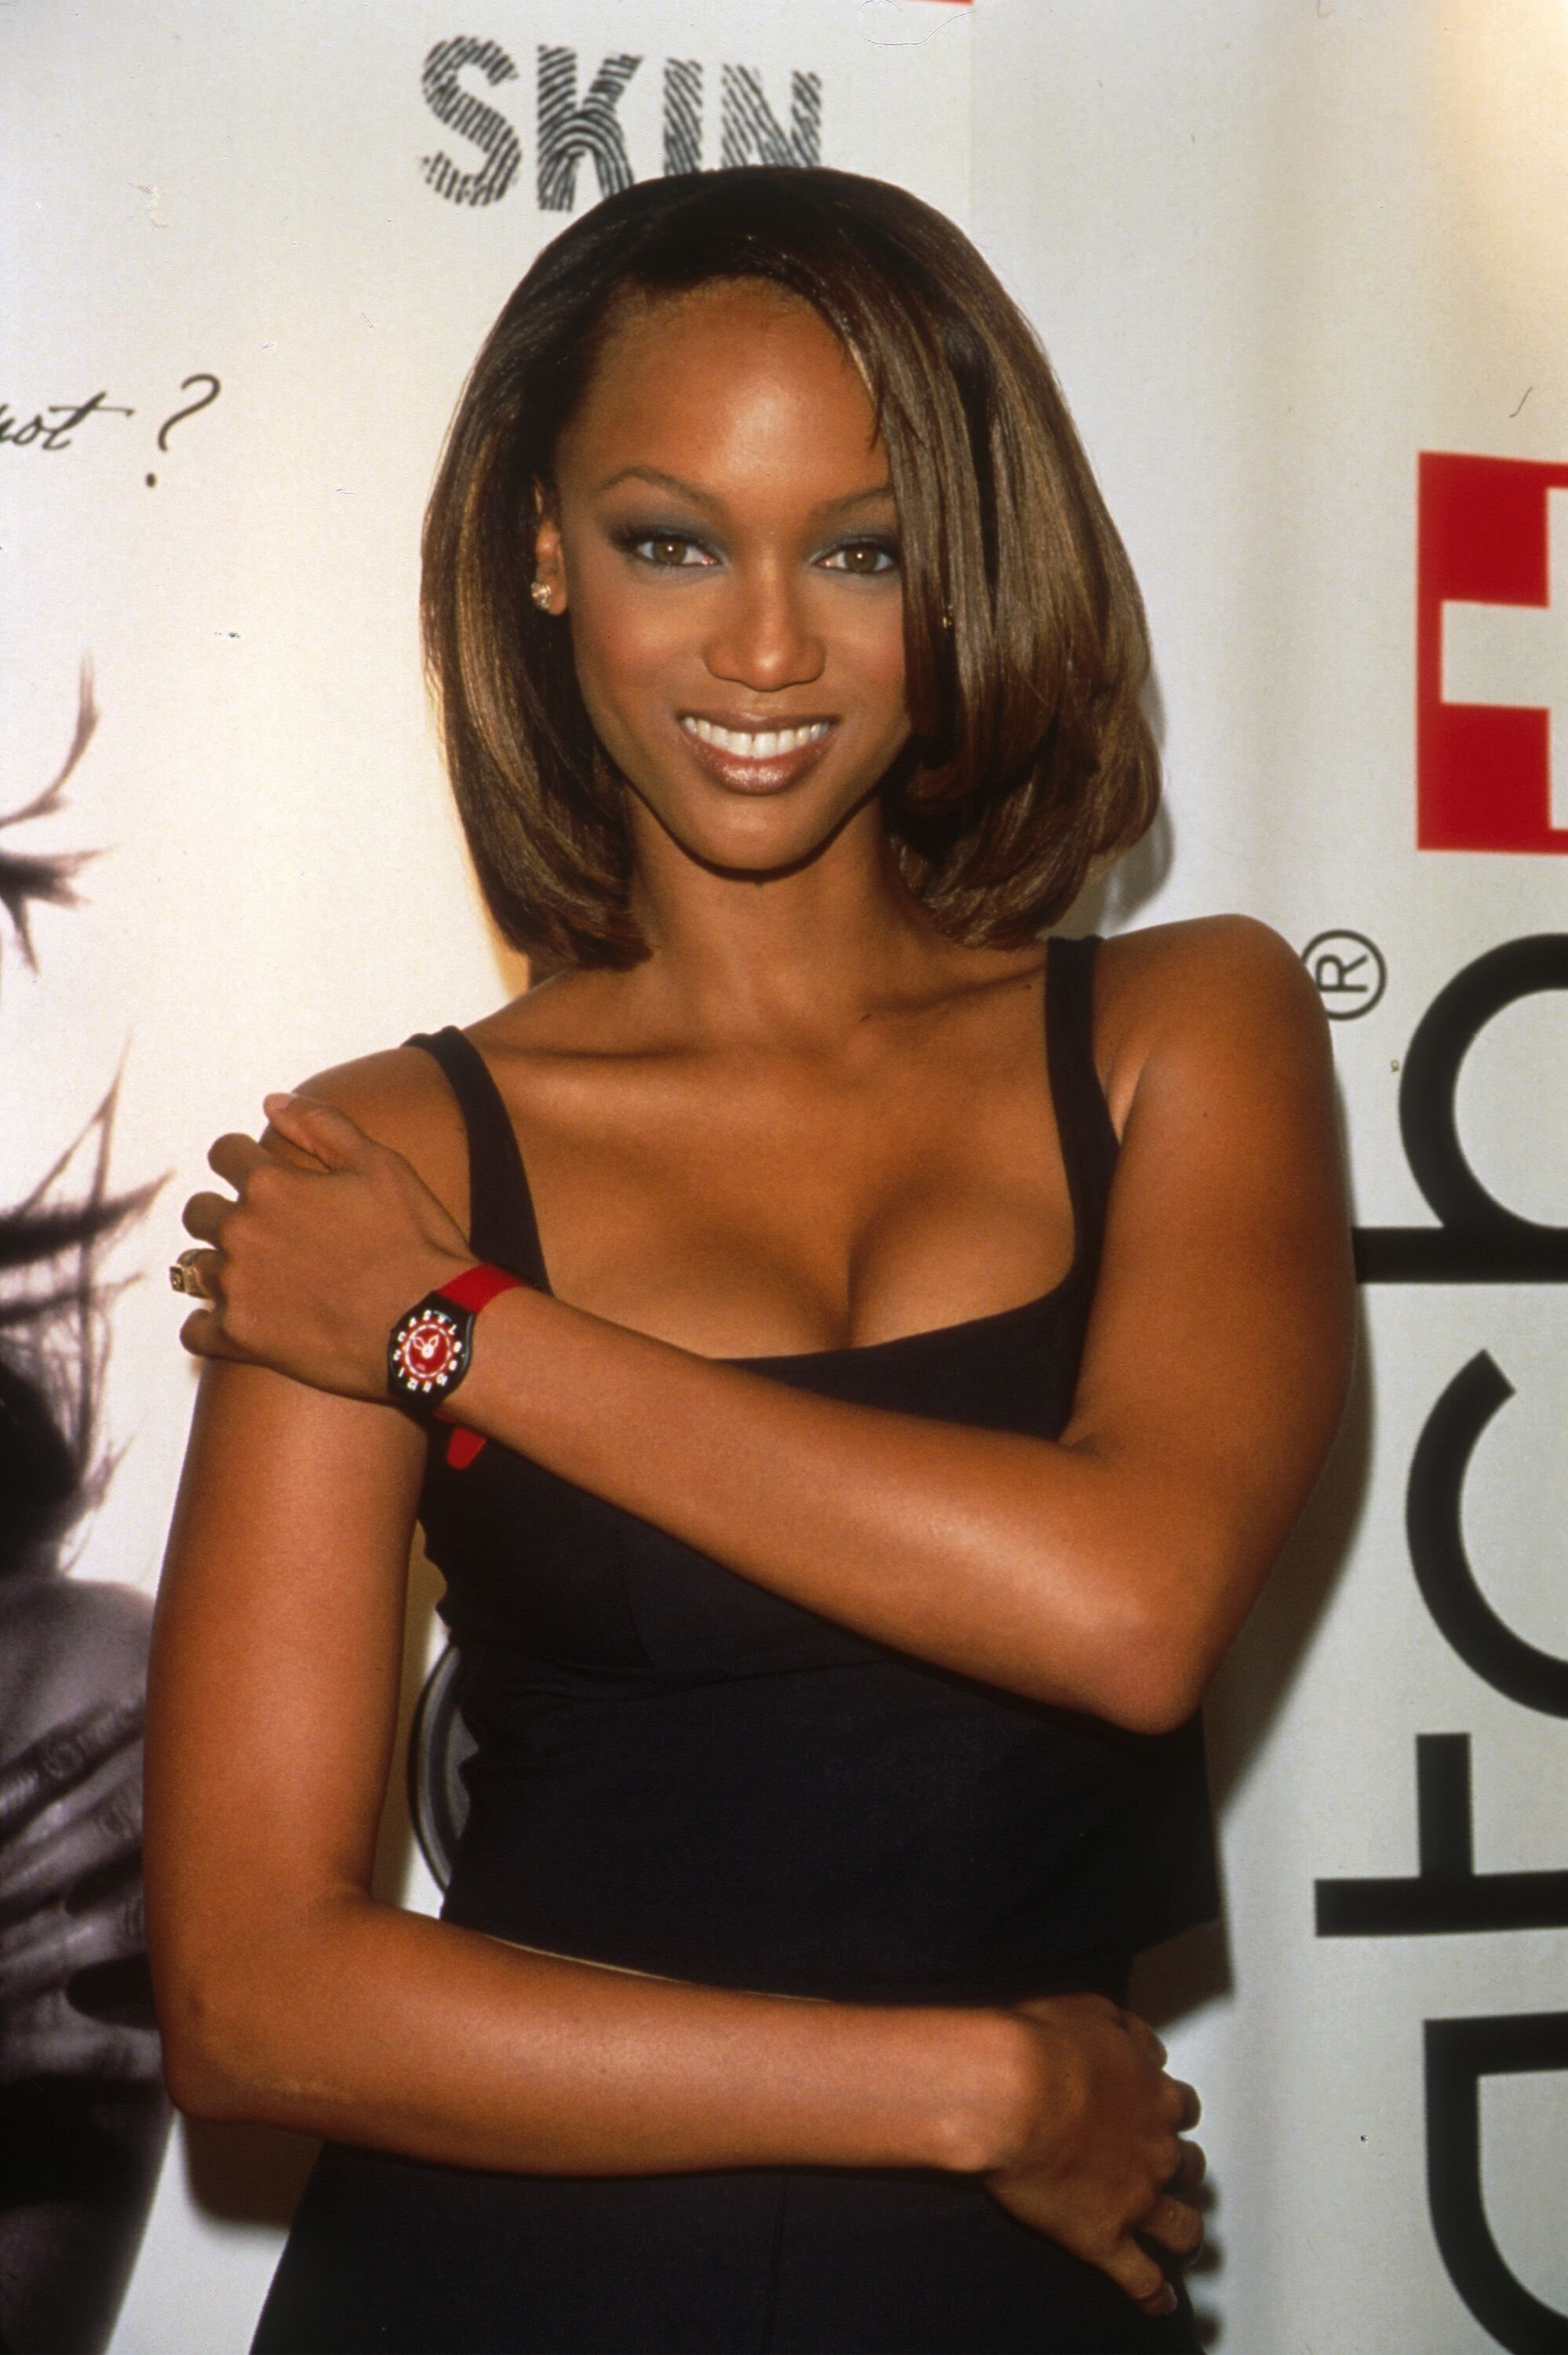 """Tyra Banks promotes the new Swatch """"Skin"""" October 23, 1997 in New York City. 